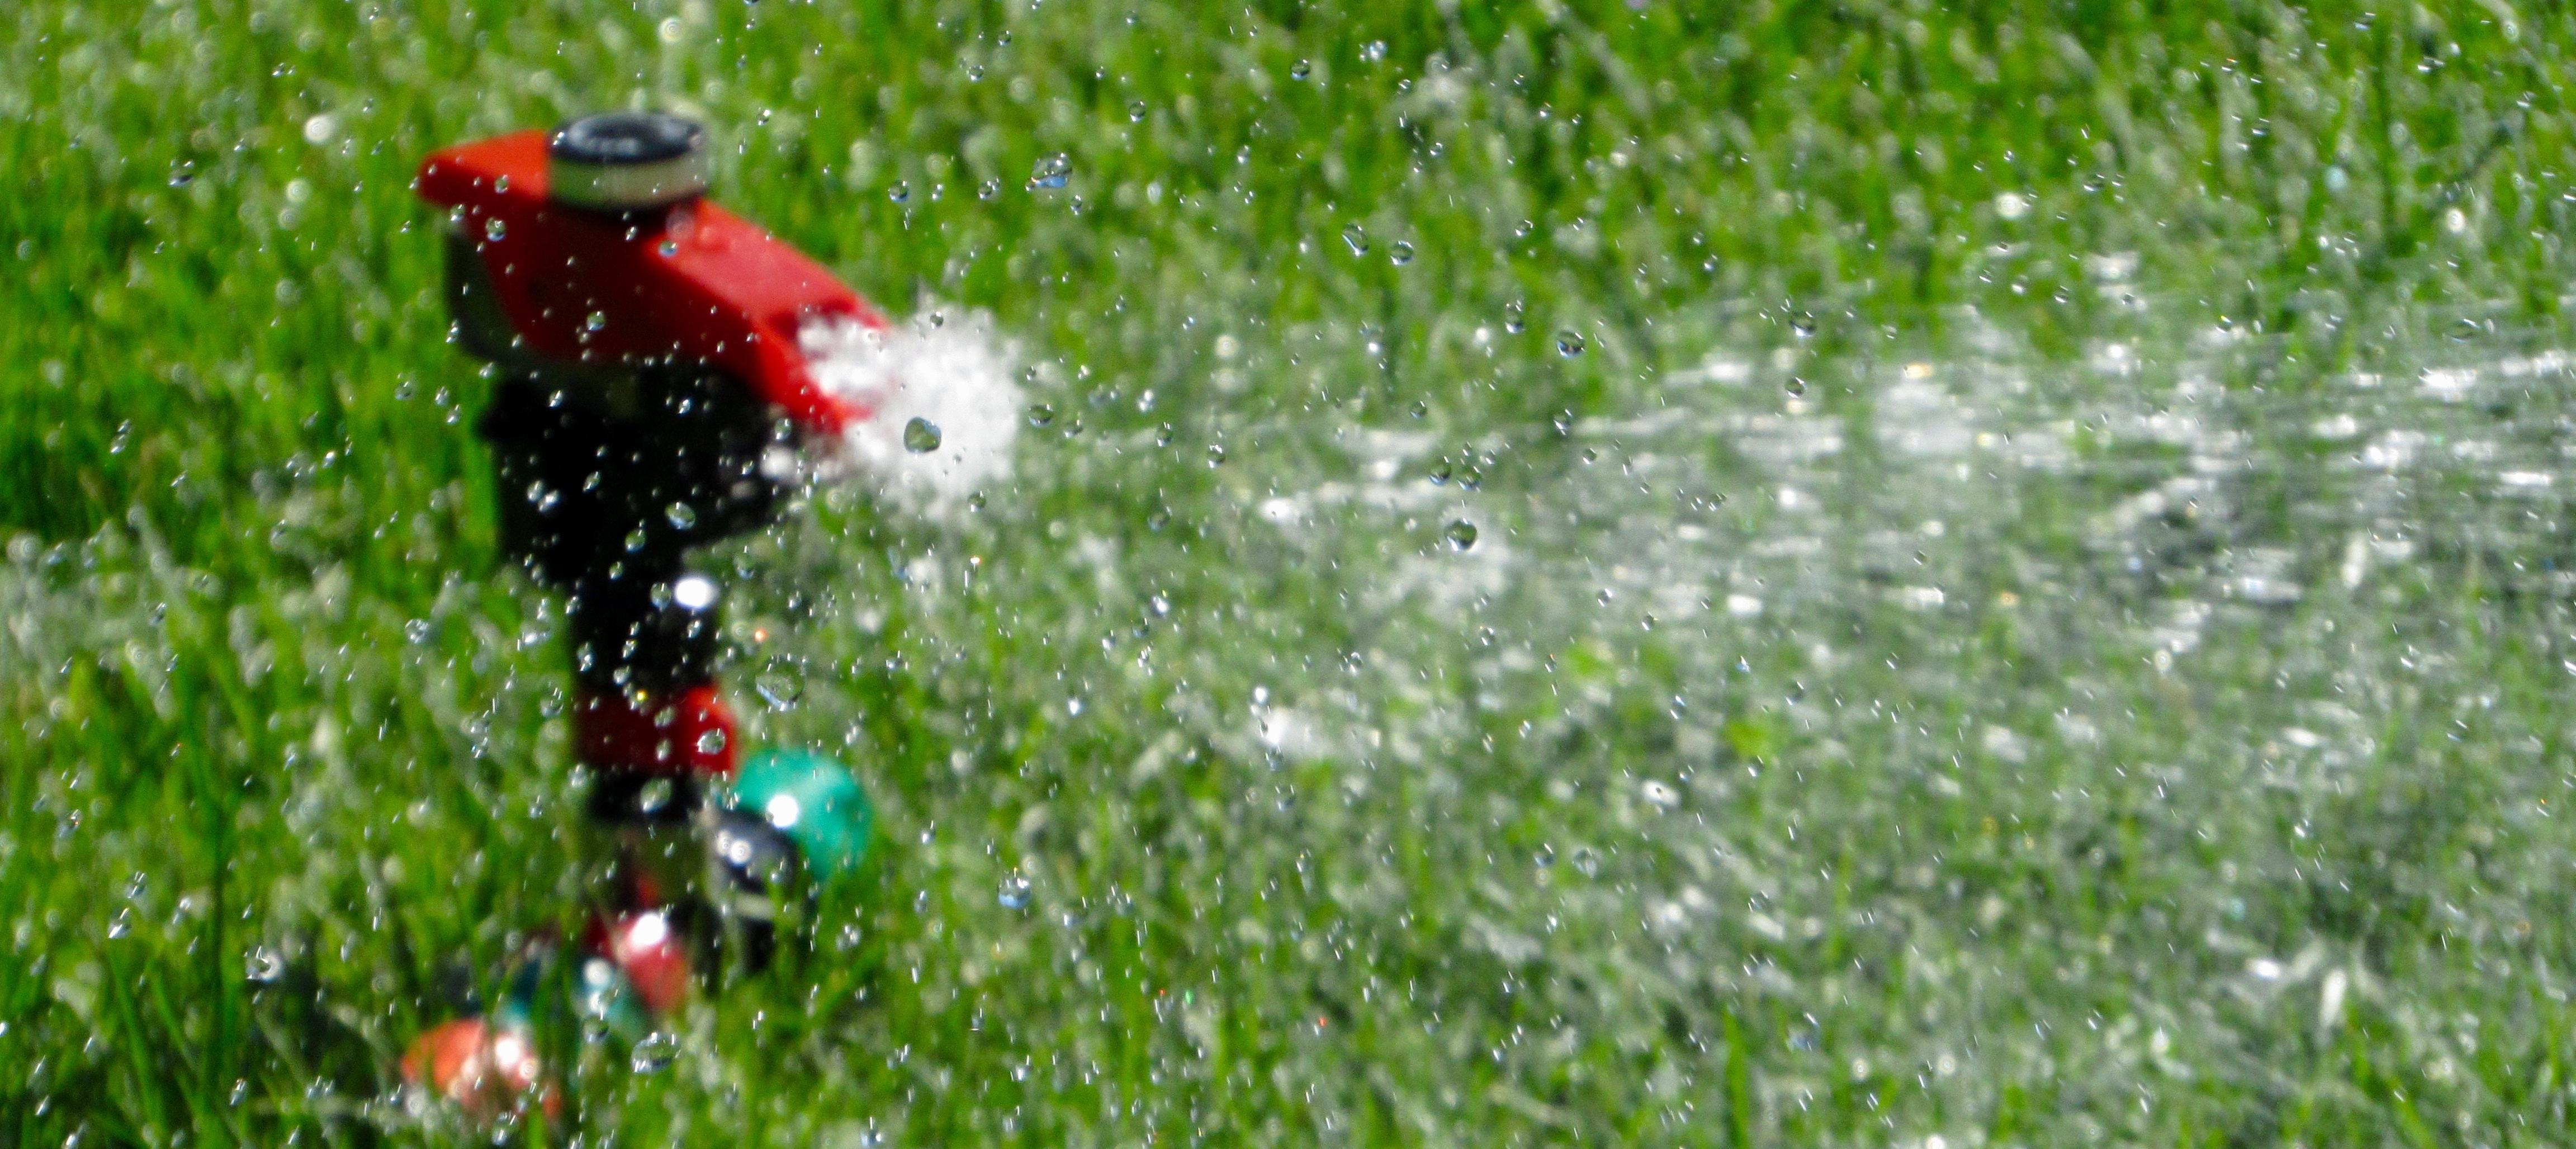 When To Water What Works Best For Lawn And Garden Products